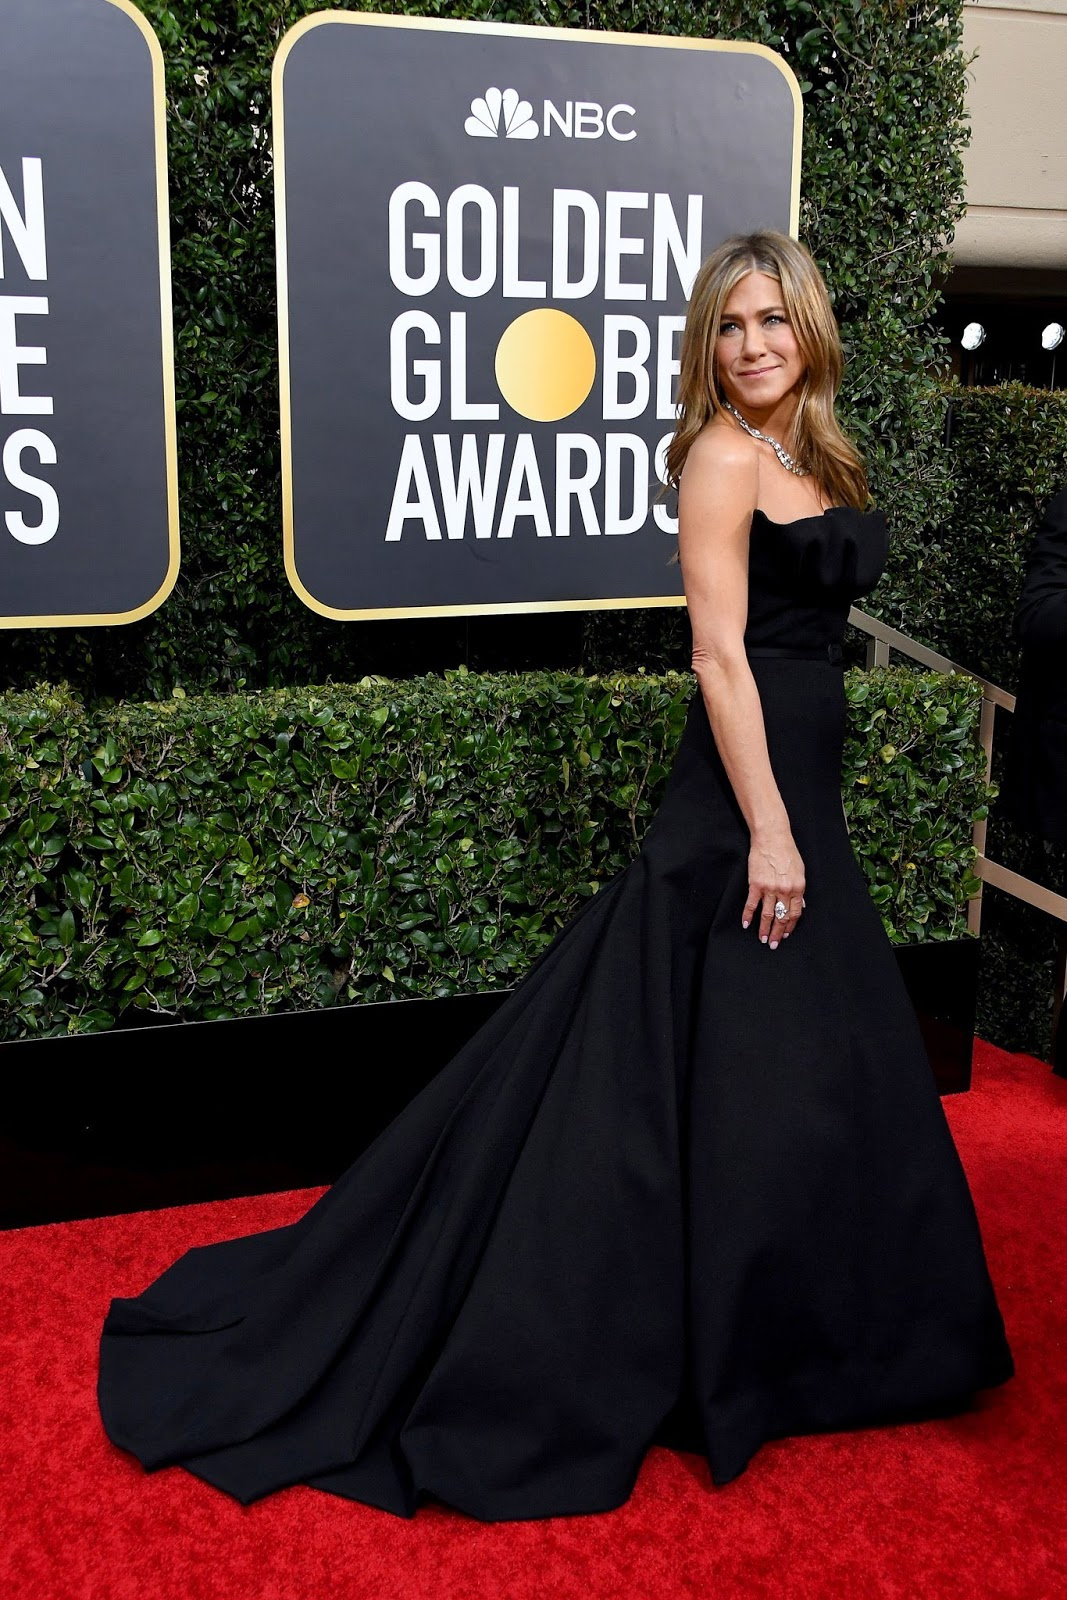 Jennifer Aniston Looked Like a Smokeshow in a Black Dior Dress at the 2020 Golden Globes